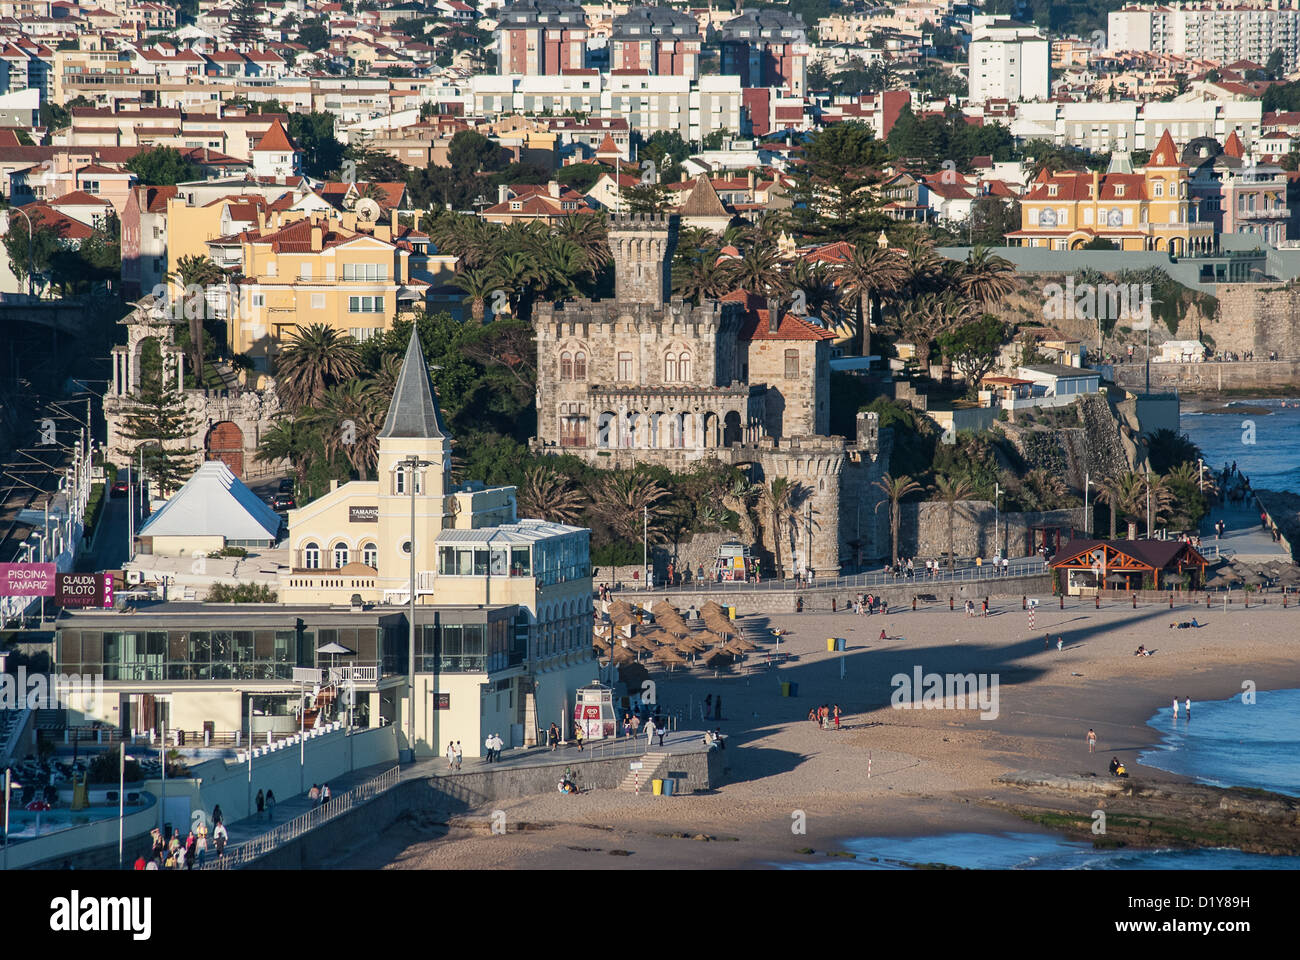 a view from the estoril eden hotel in monte estoril portugal stock photo 52845005 alamy. Black Bedroom Furniture Sets. Home Design Ideas